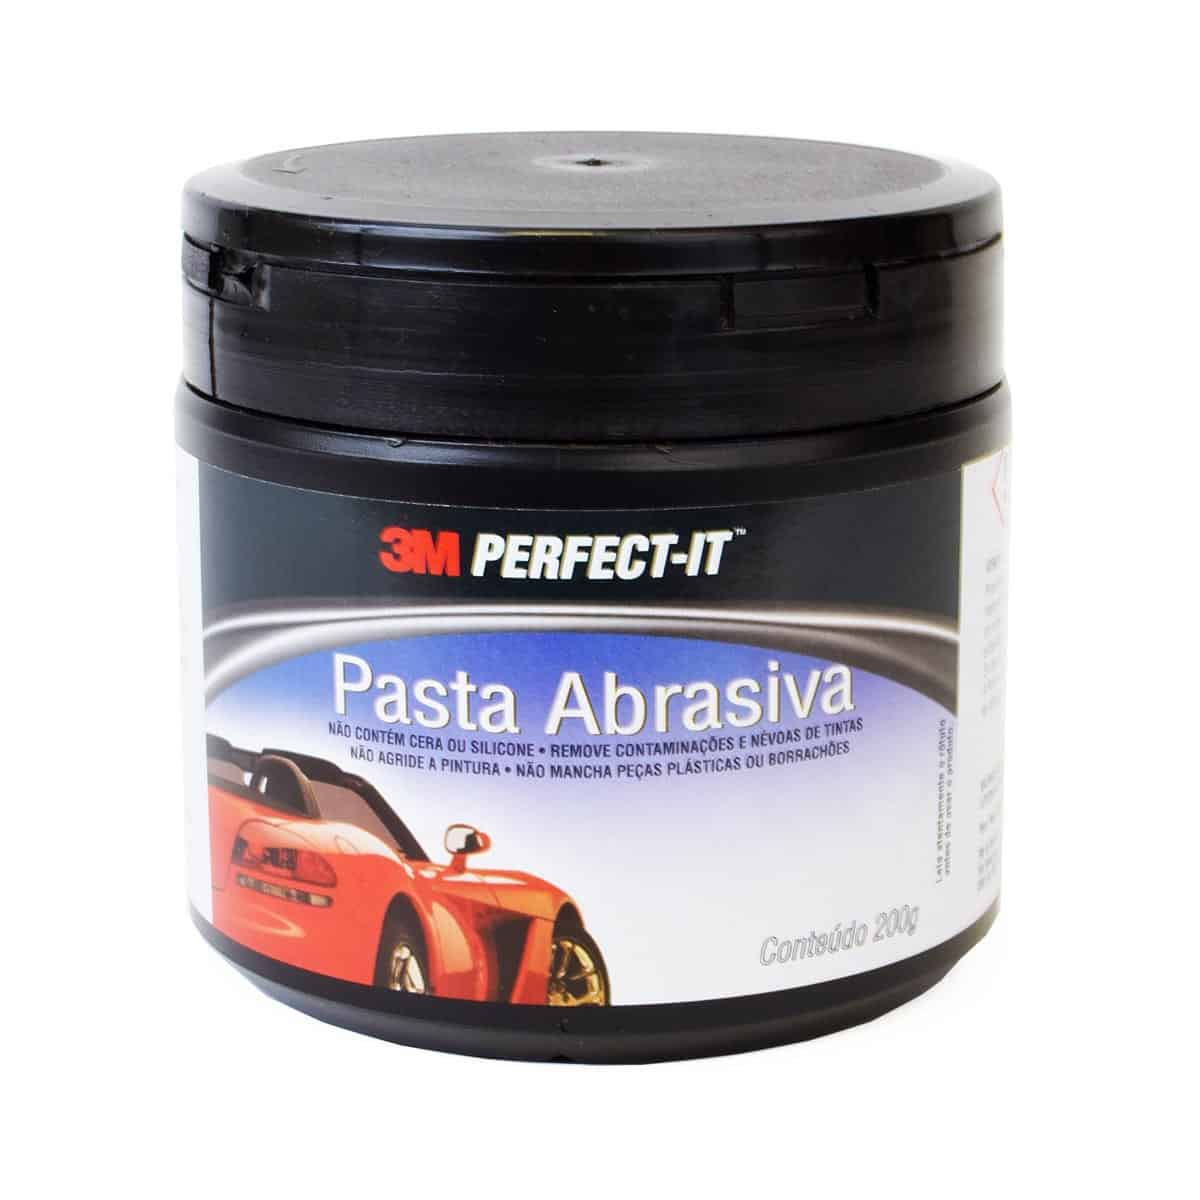 Foto 1 - Pasta Abrasiva Perfect-It 3M - 100g